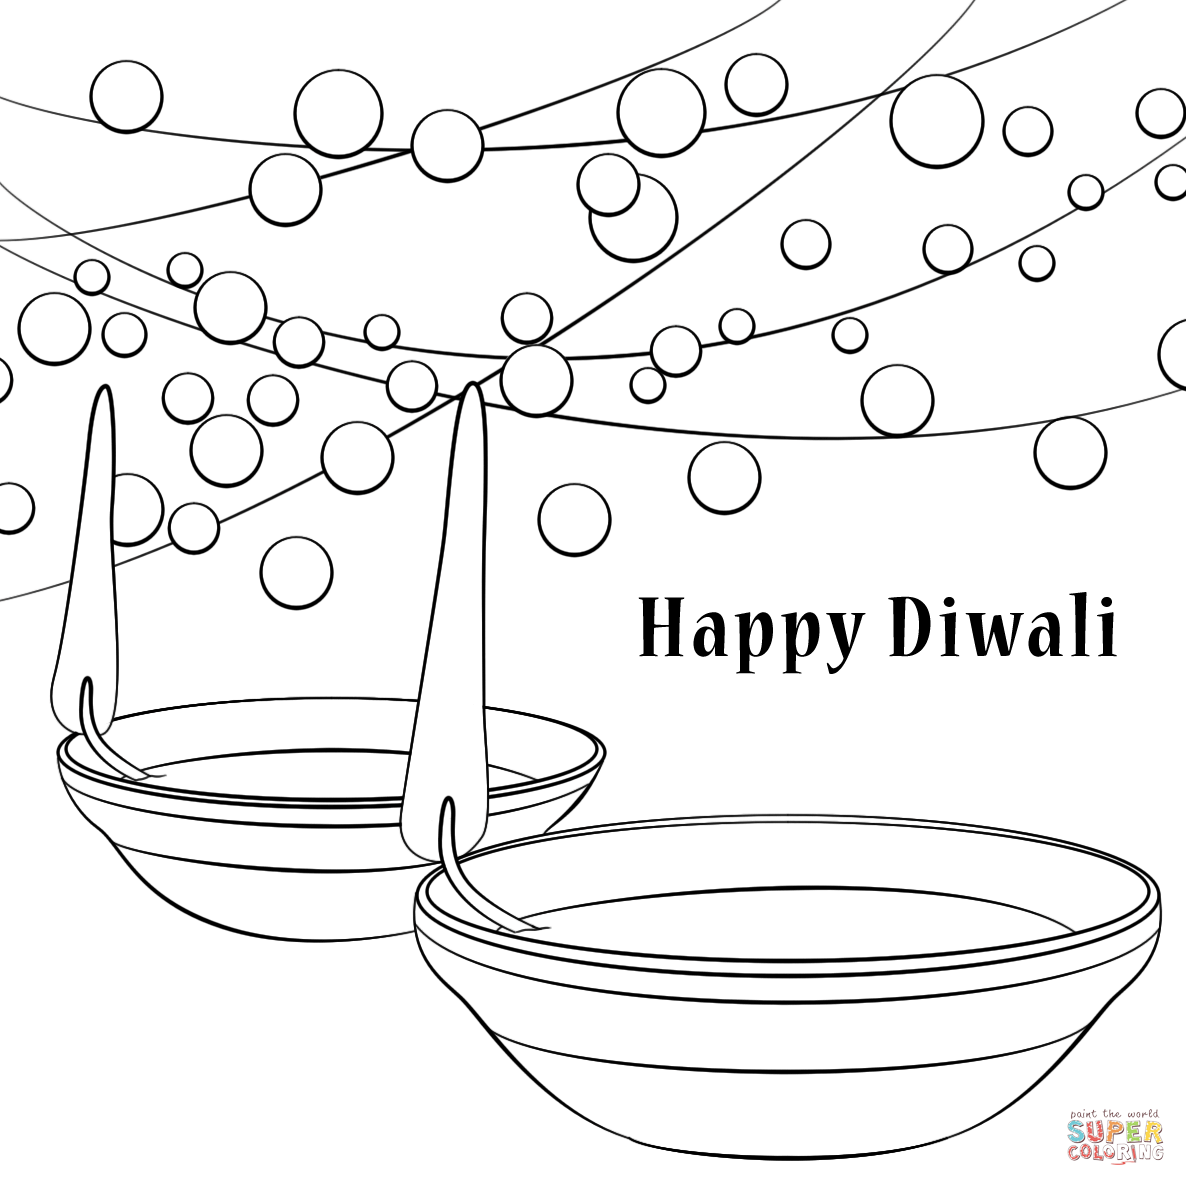 1186x1186 Happy Diwali Coloring Page Free Printable Coloring Pages Diwali